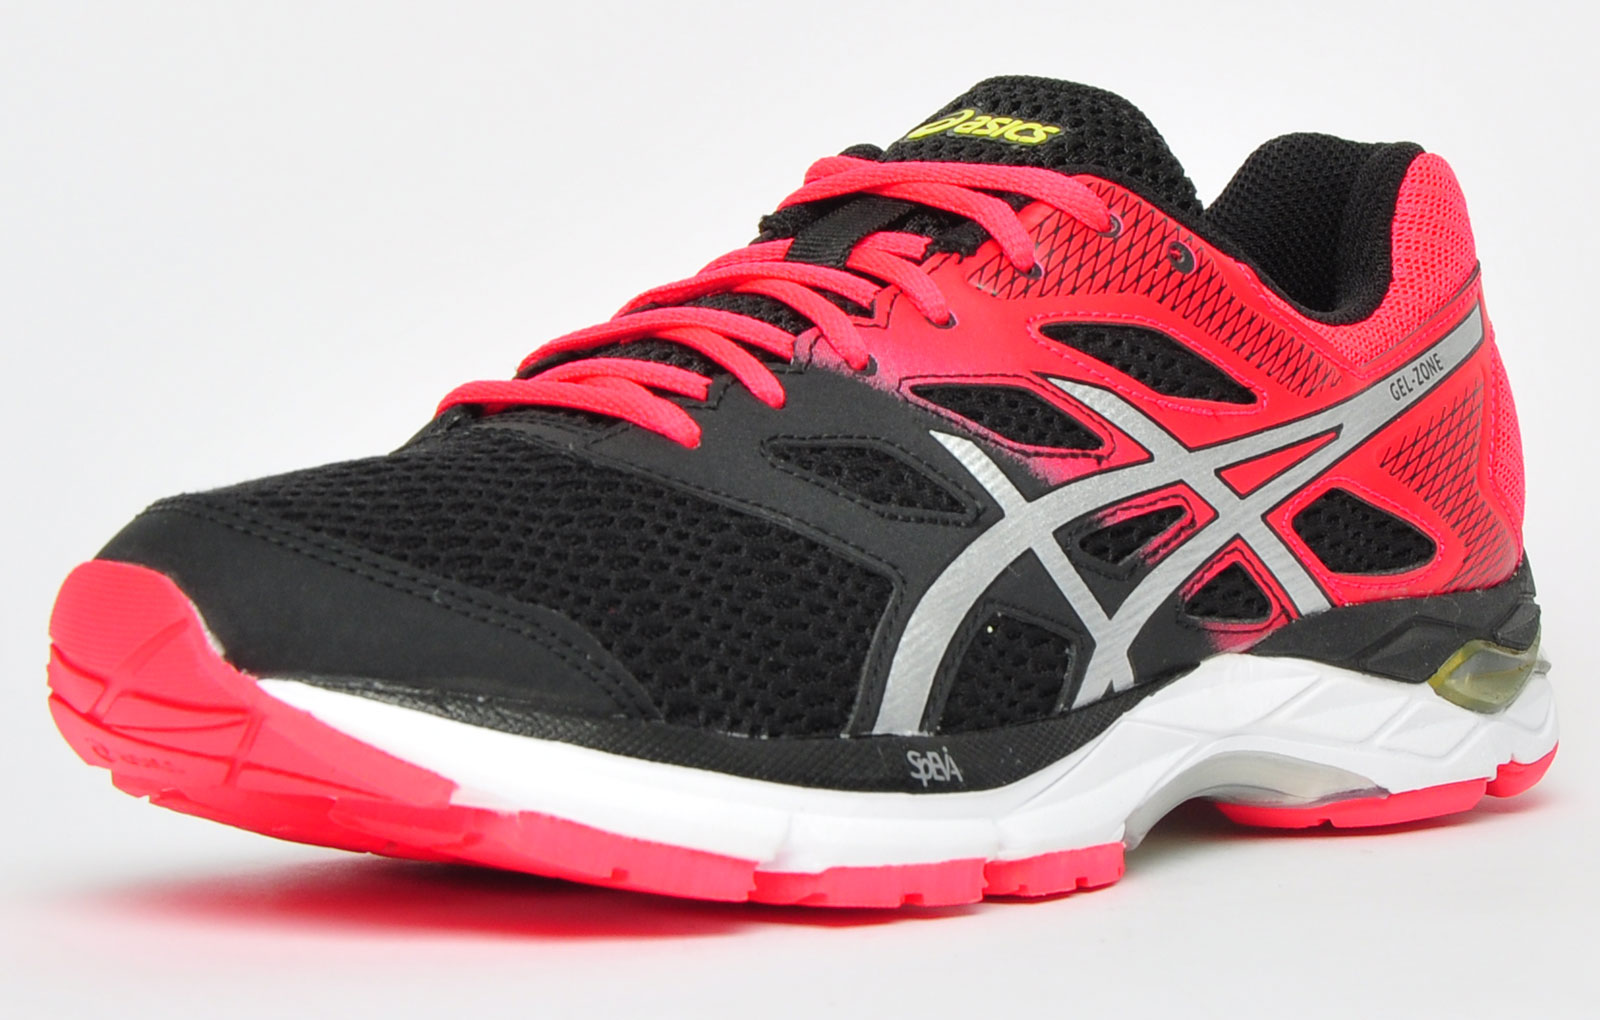 asics womens shoes red zone